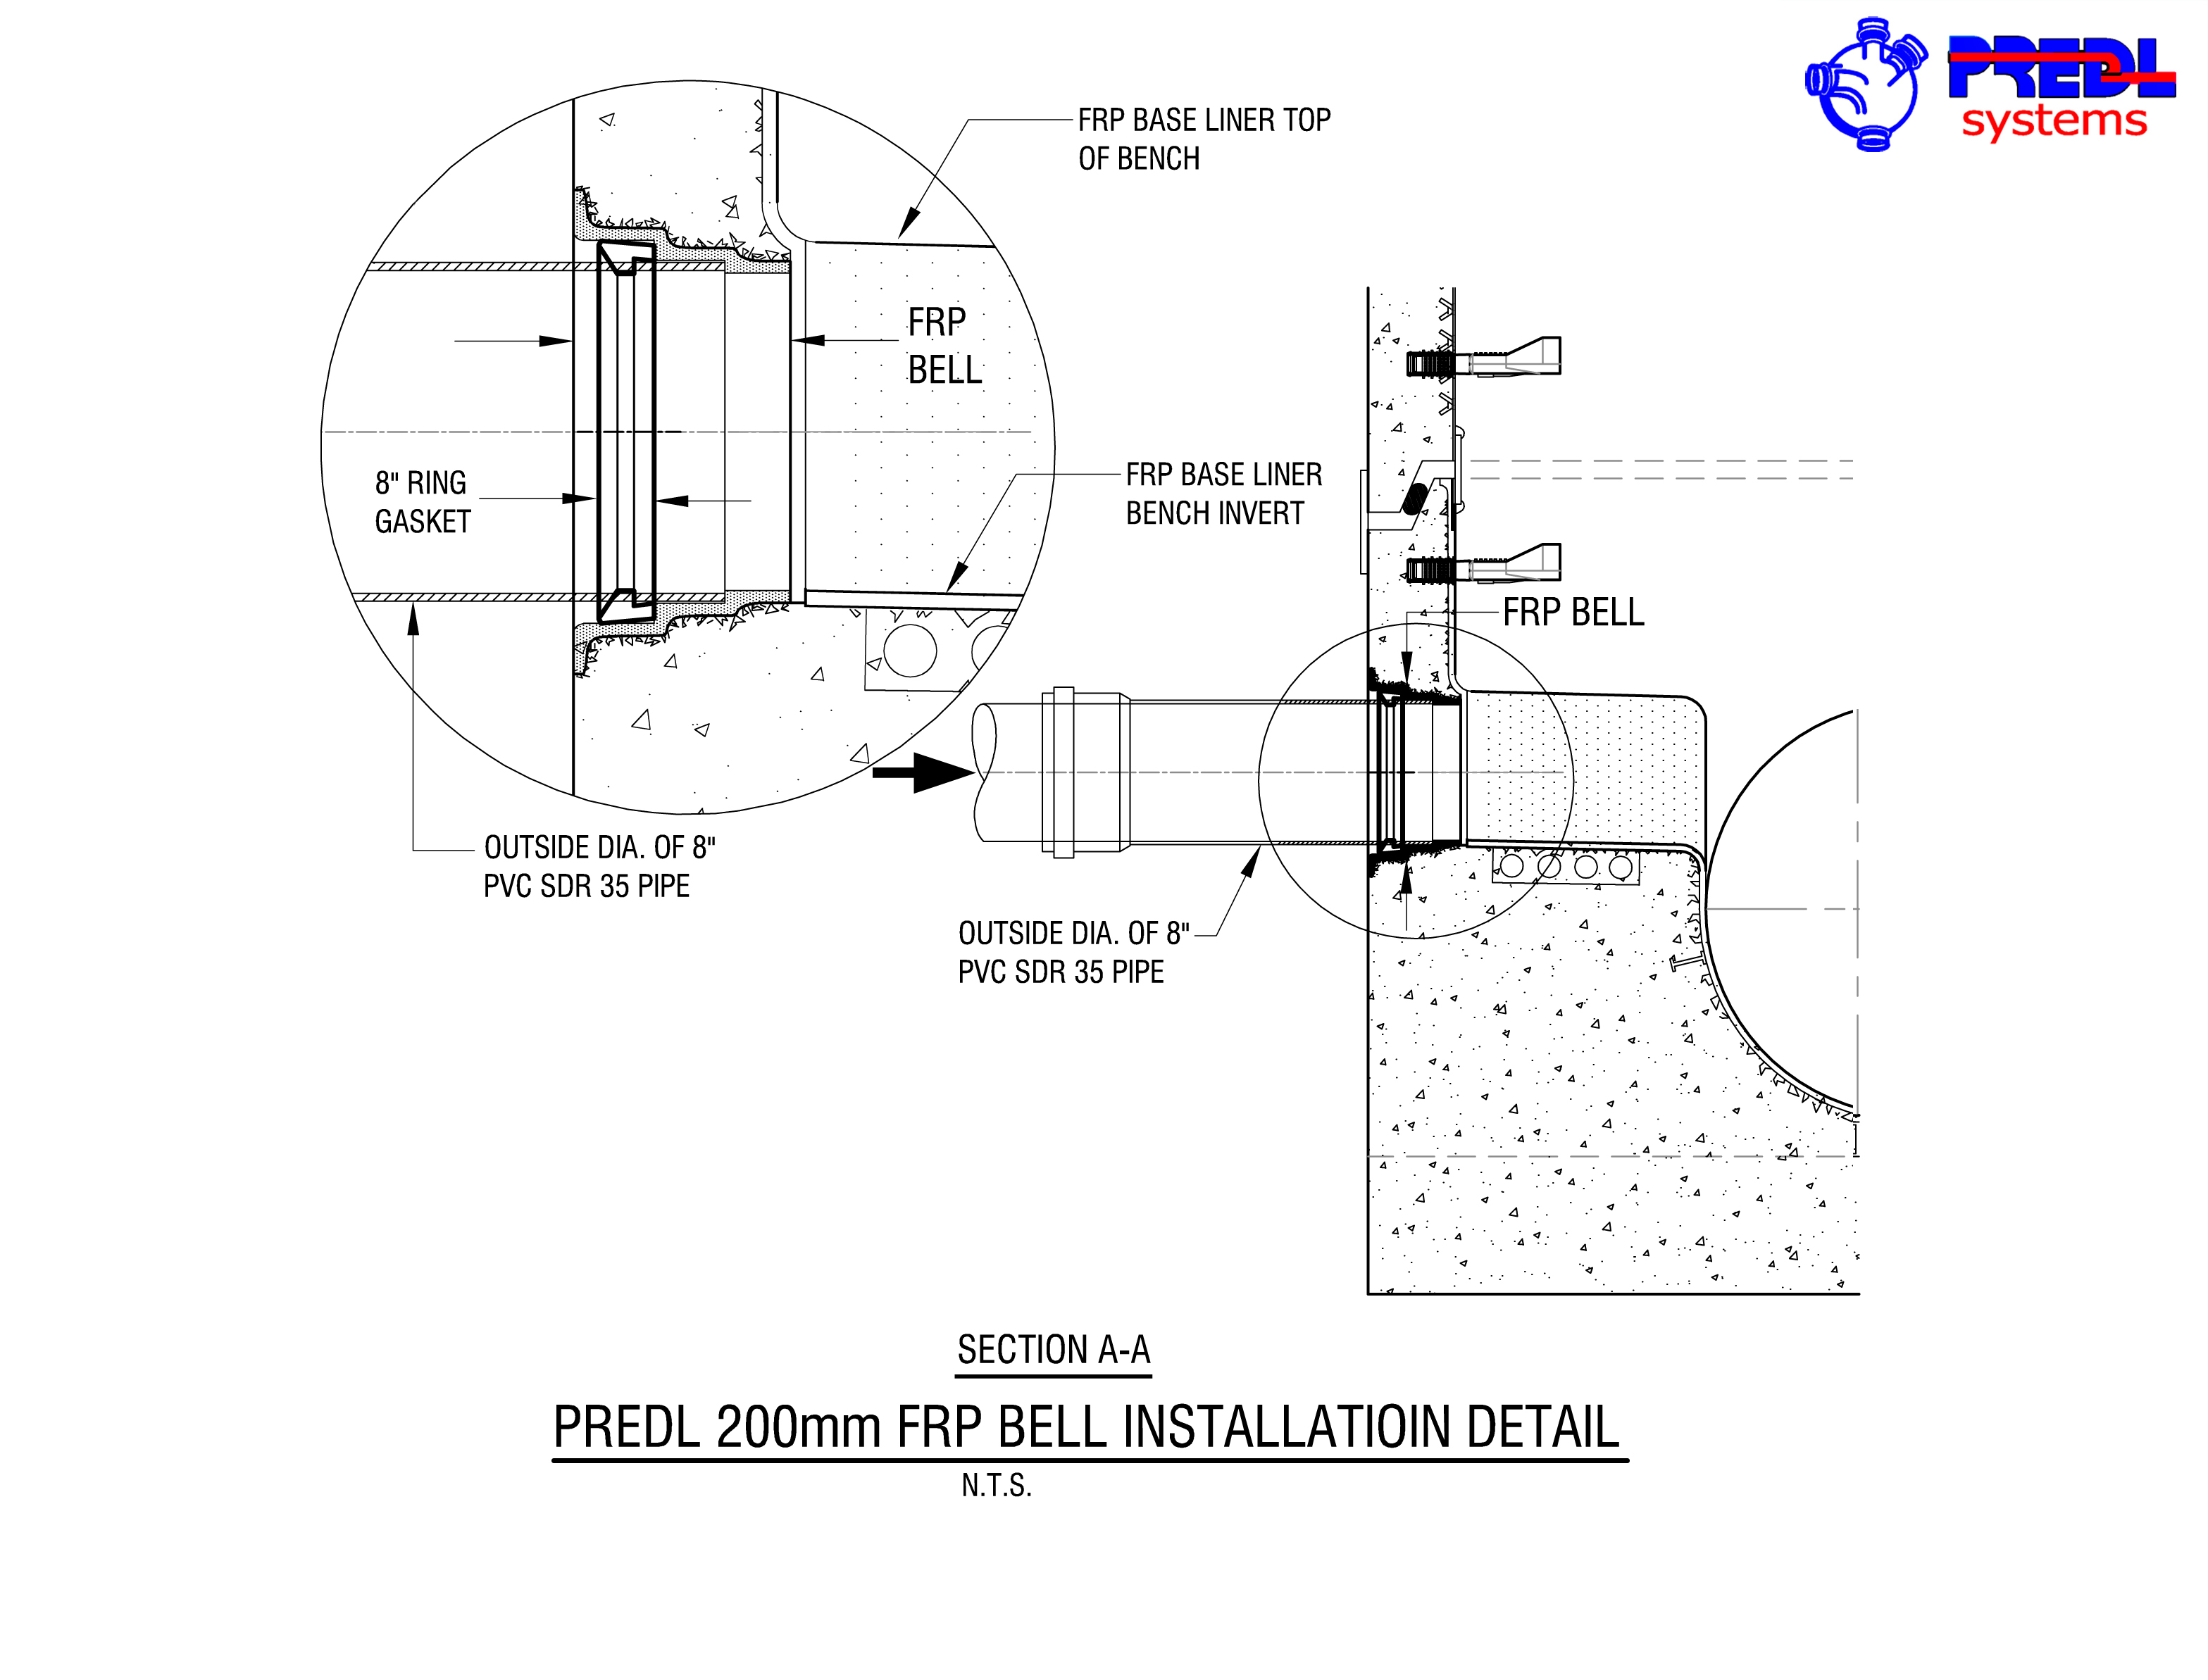 In Wall Valve Box